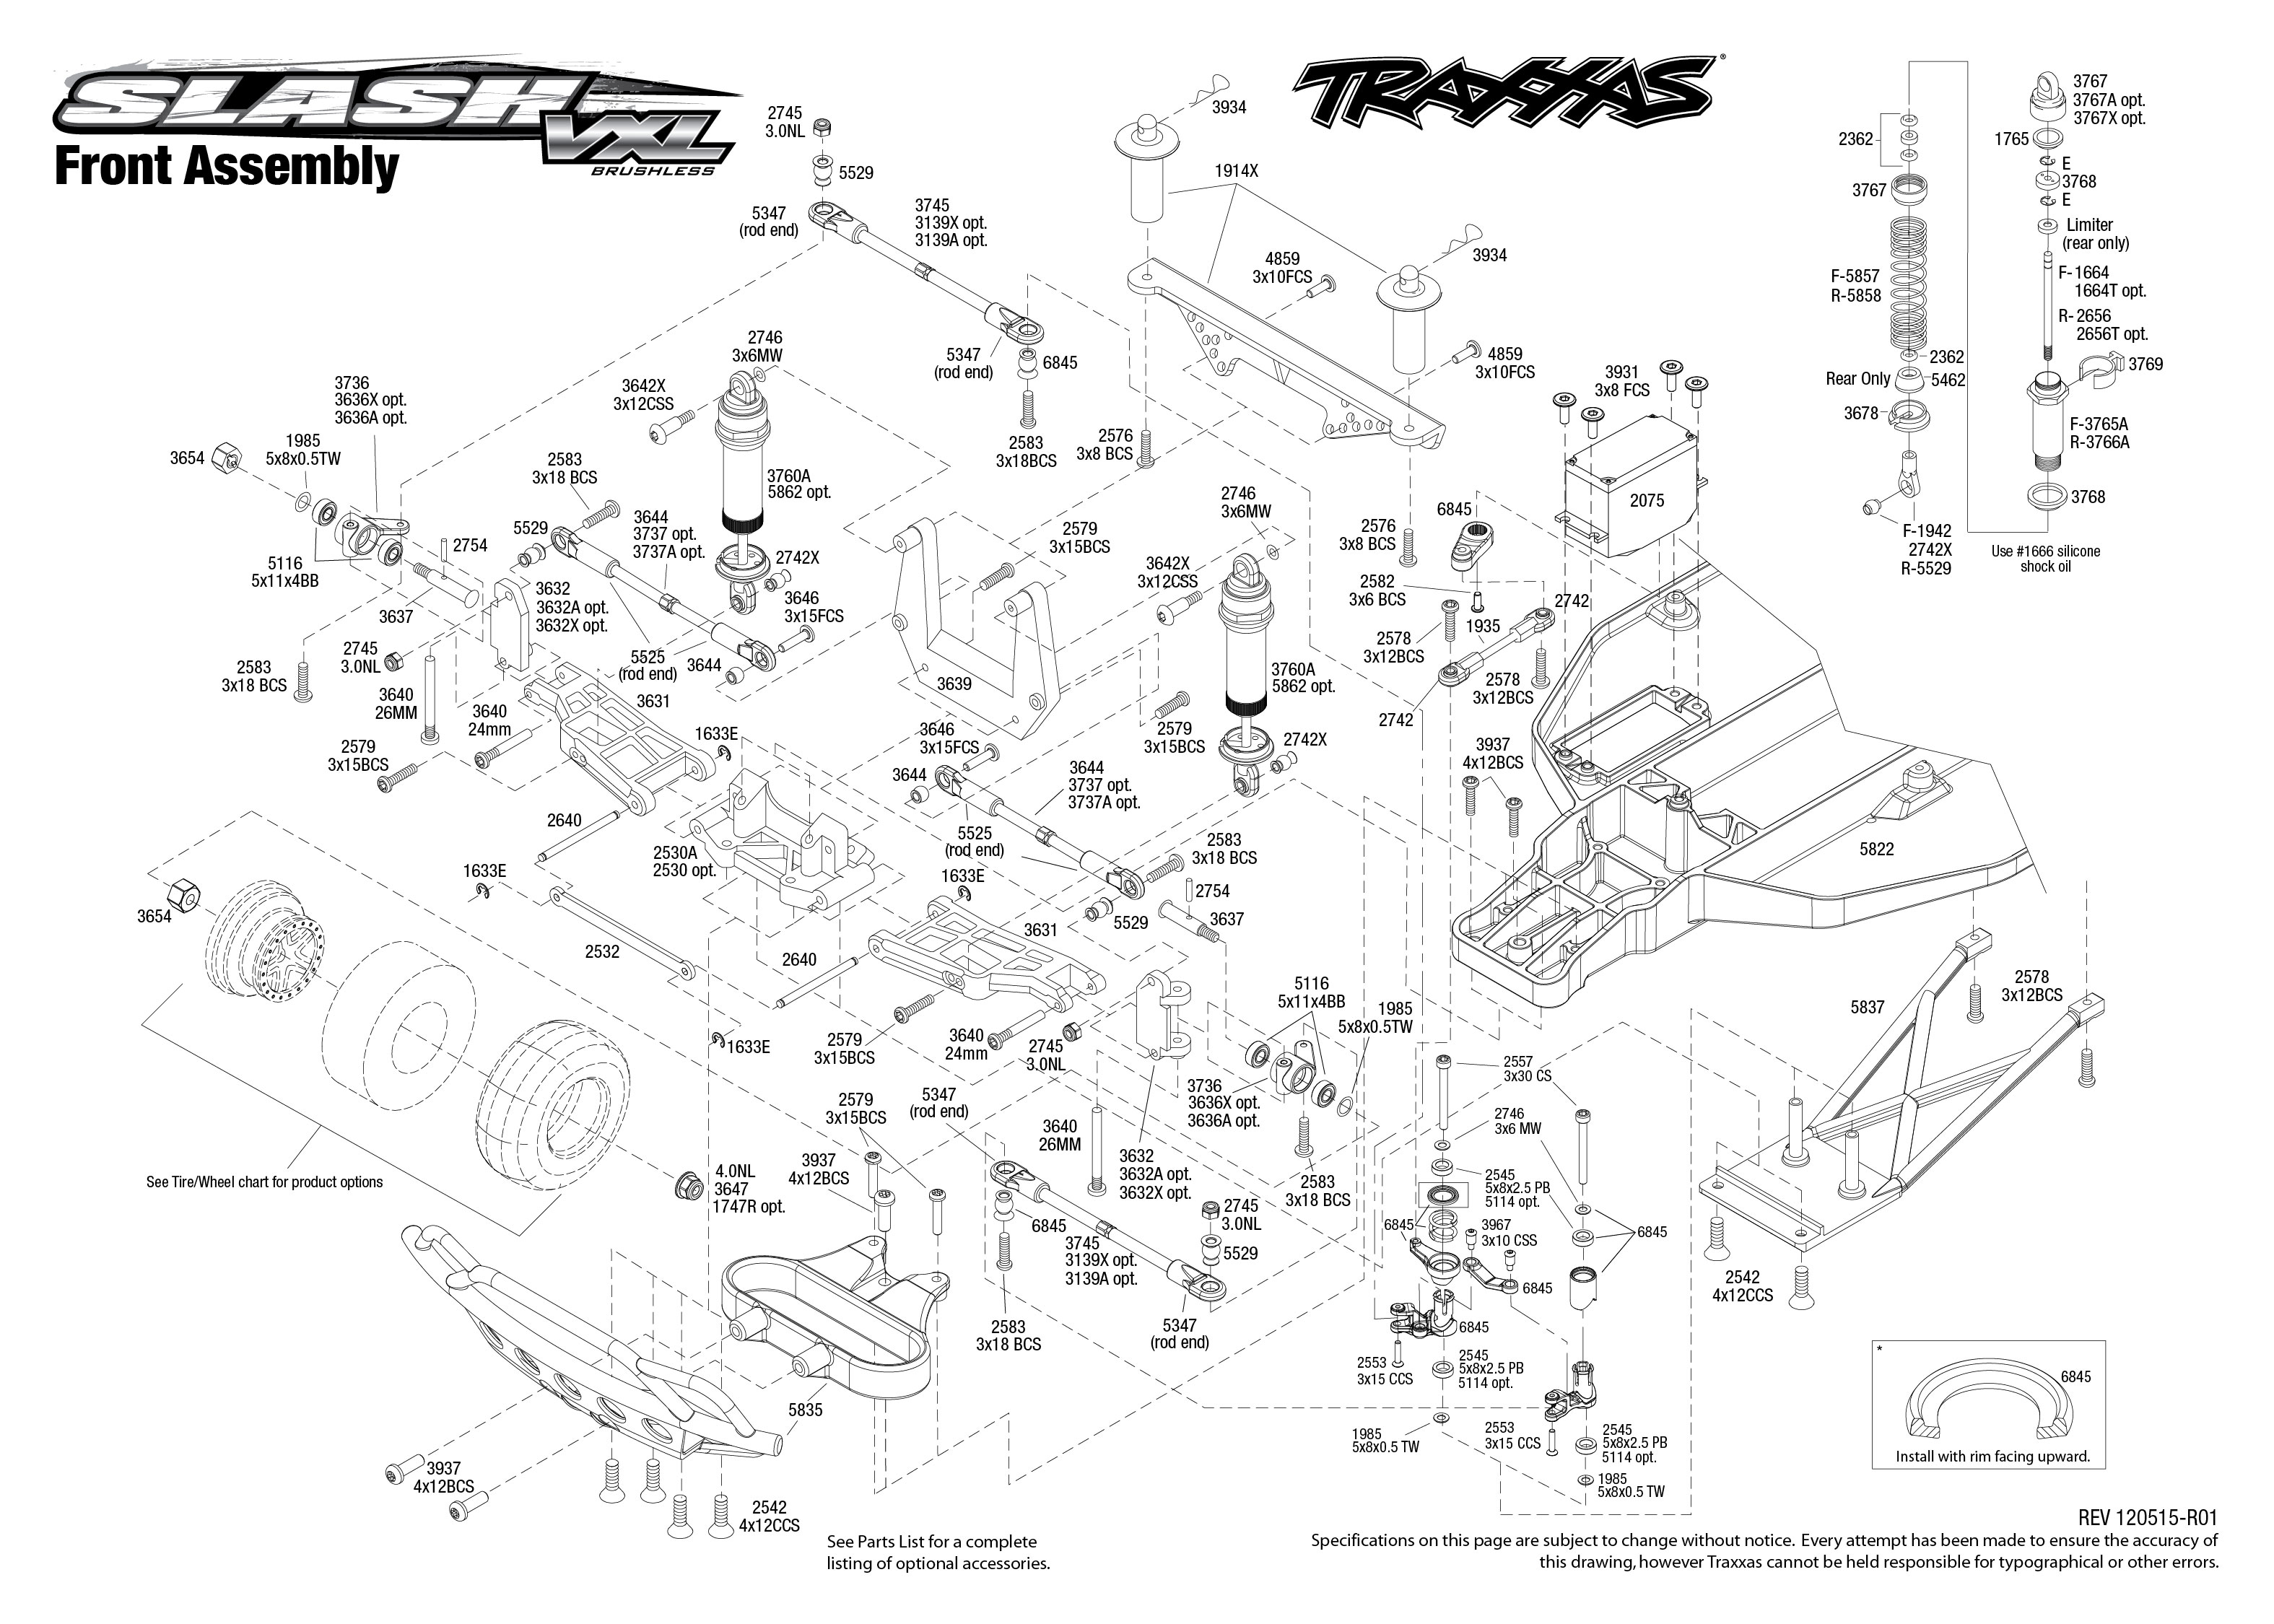 Cute Border Templates additionally Traxxas slash 4x4 parts diagram moreover Wheel Offsets Explained besides Tra 5807l together with Os Alfabetos Japoneses Hiragana. on tire chart